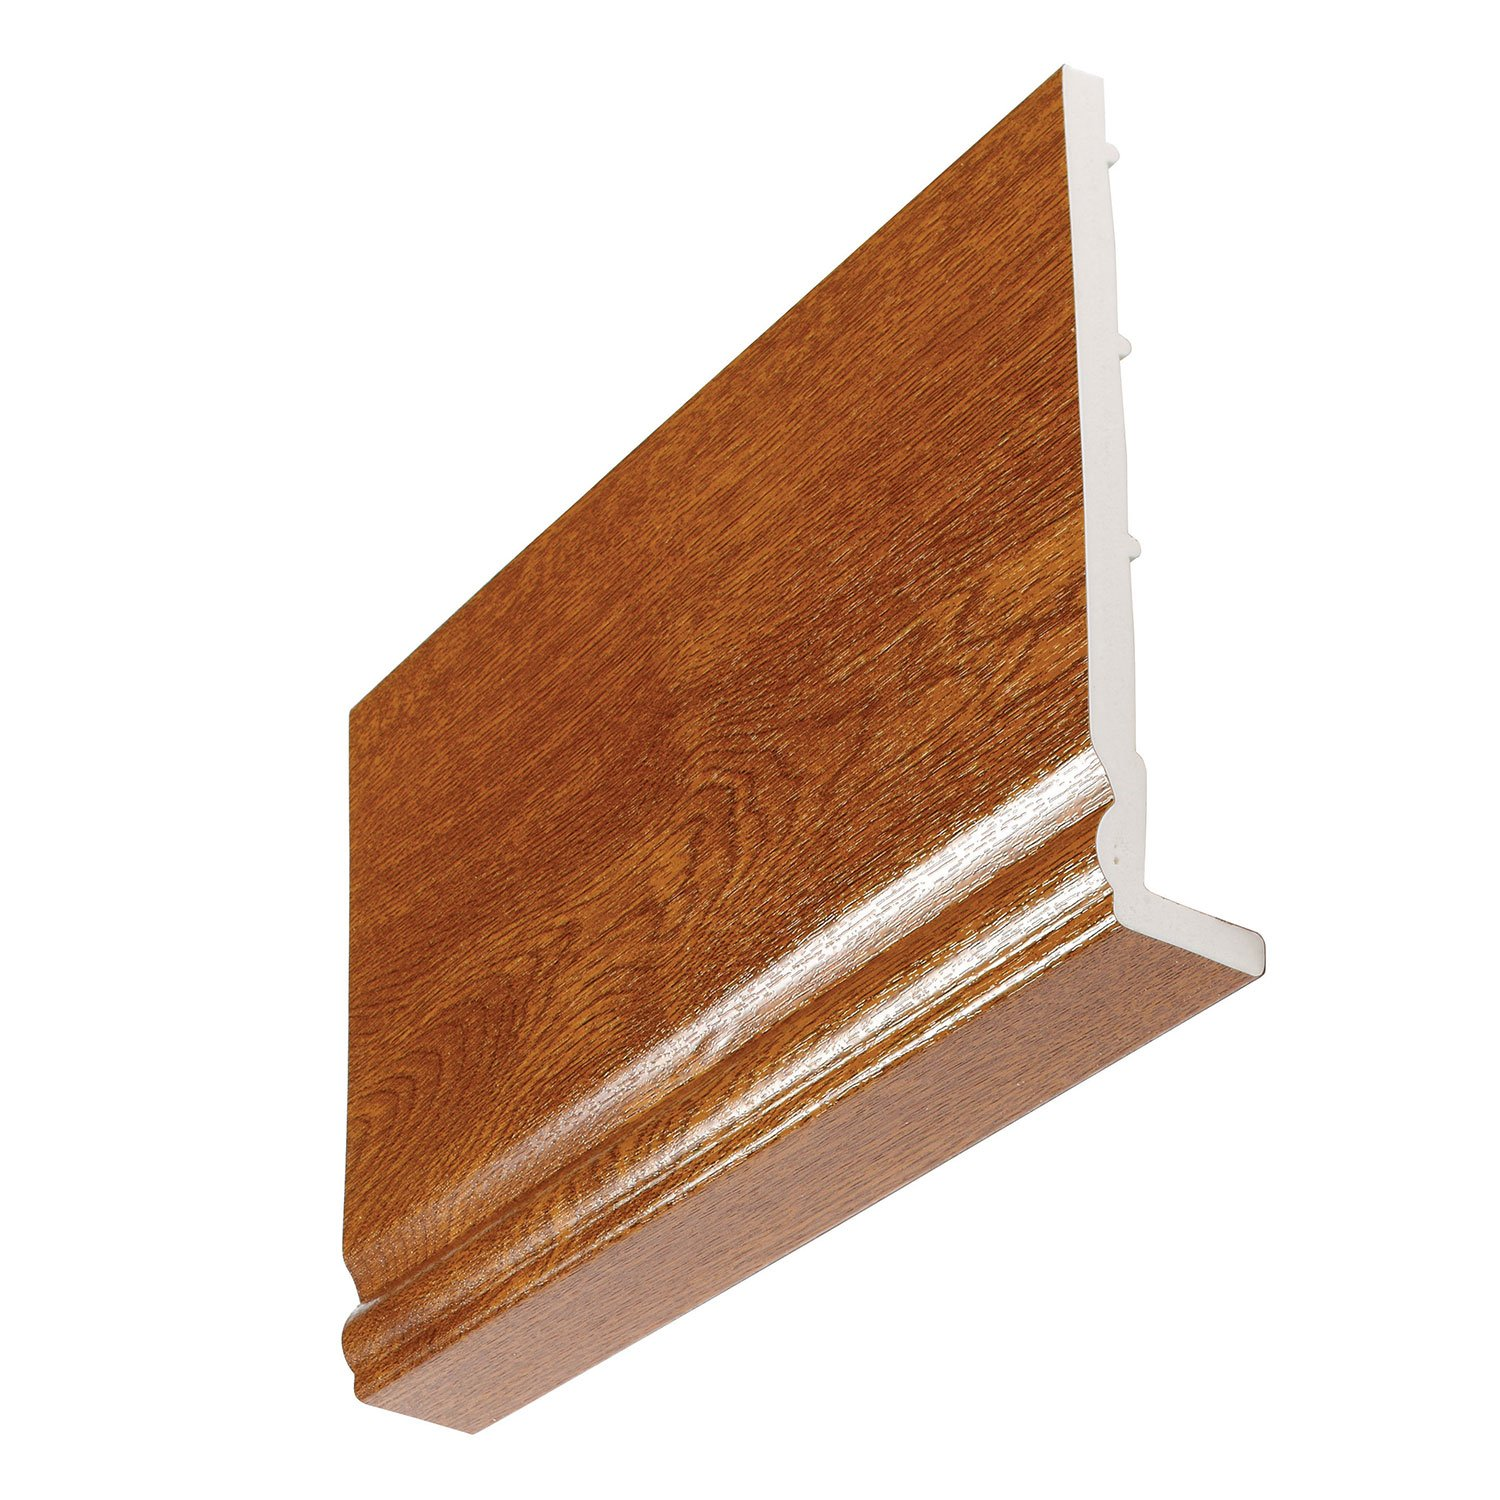 8mm Ogee Sherwood Fascia Boards